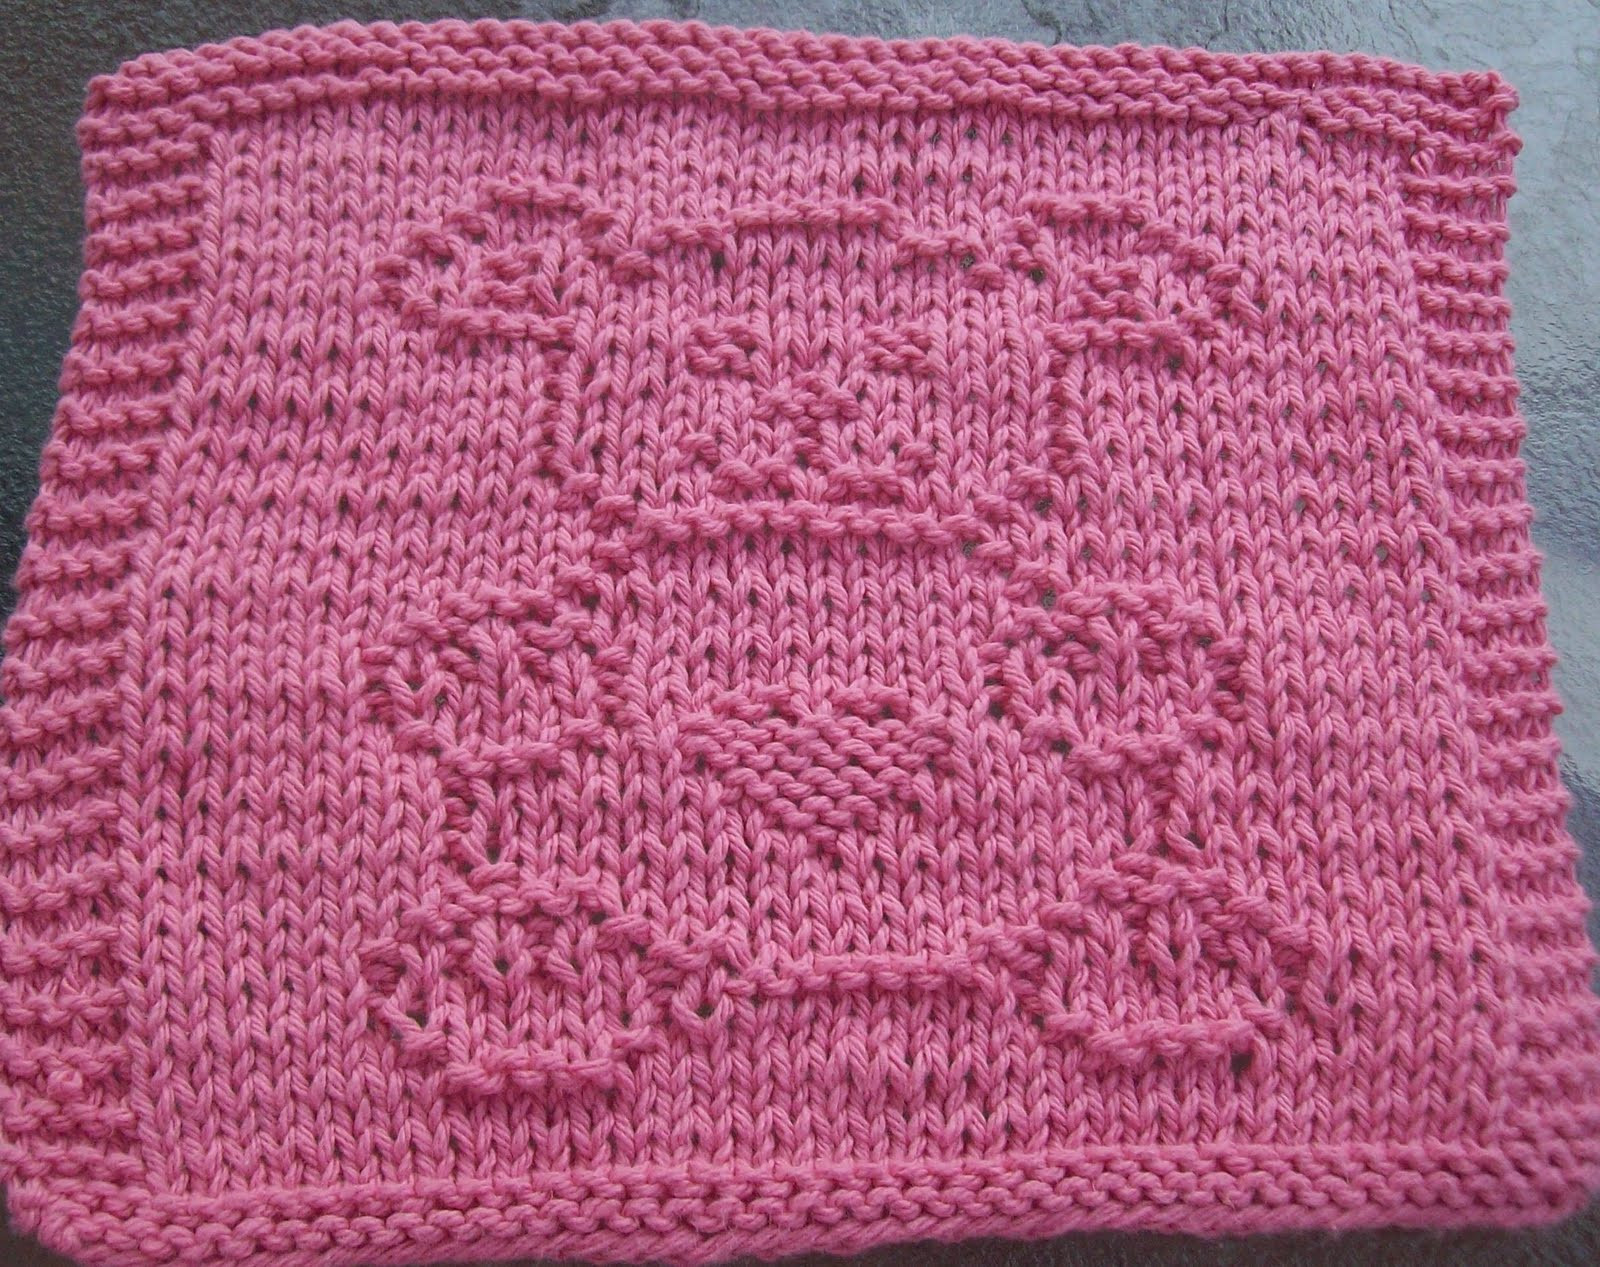 Knitted Dishcloth Elegant Knitted Dishcloth Patterns Of Gorgeous 46 Photos Knitted Dishcloth